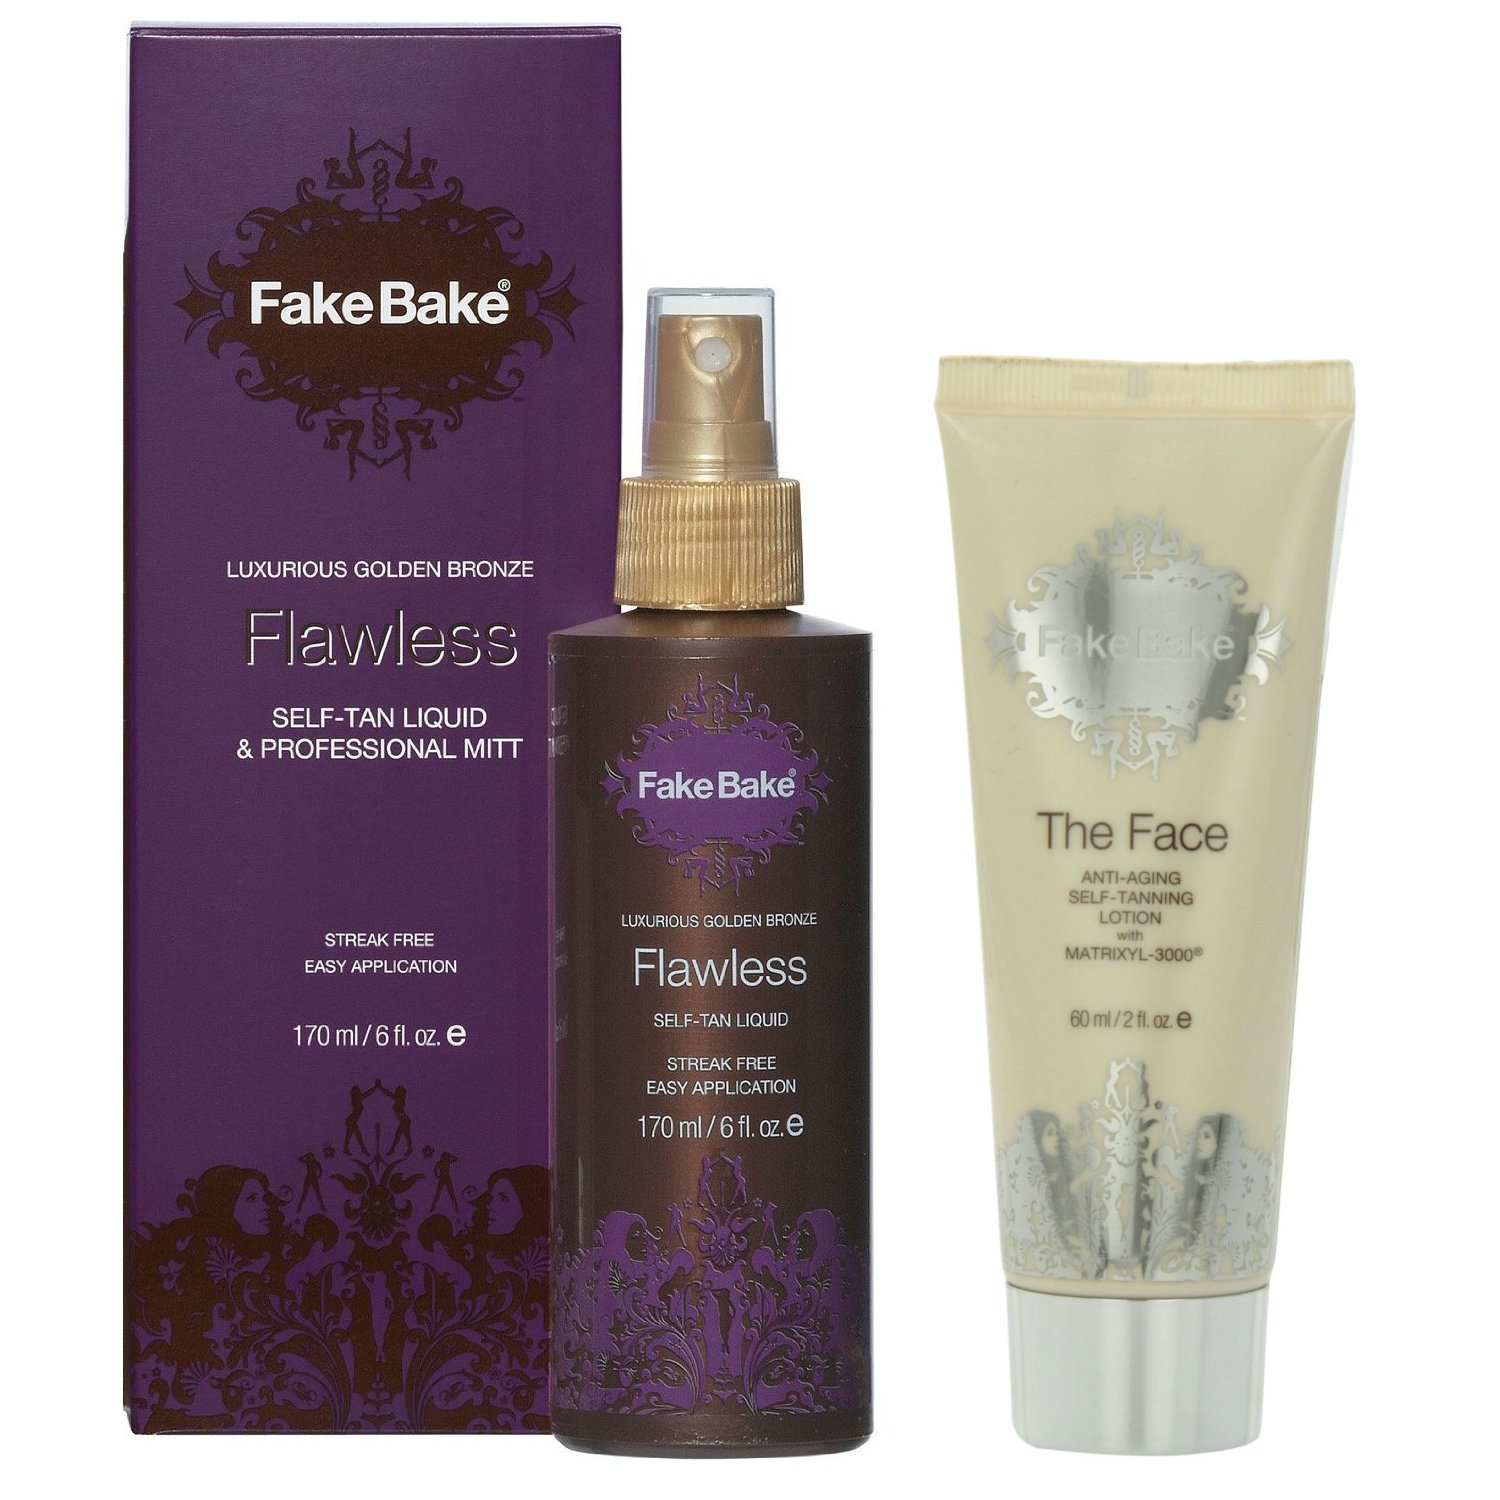 fake bake flawless 6 fl oz self tanning products